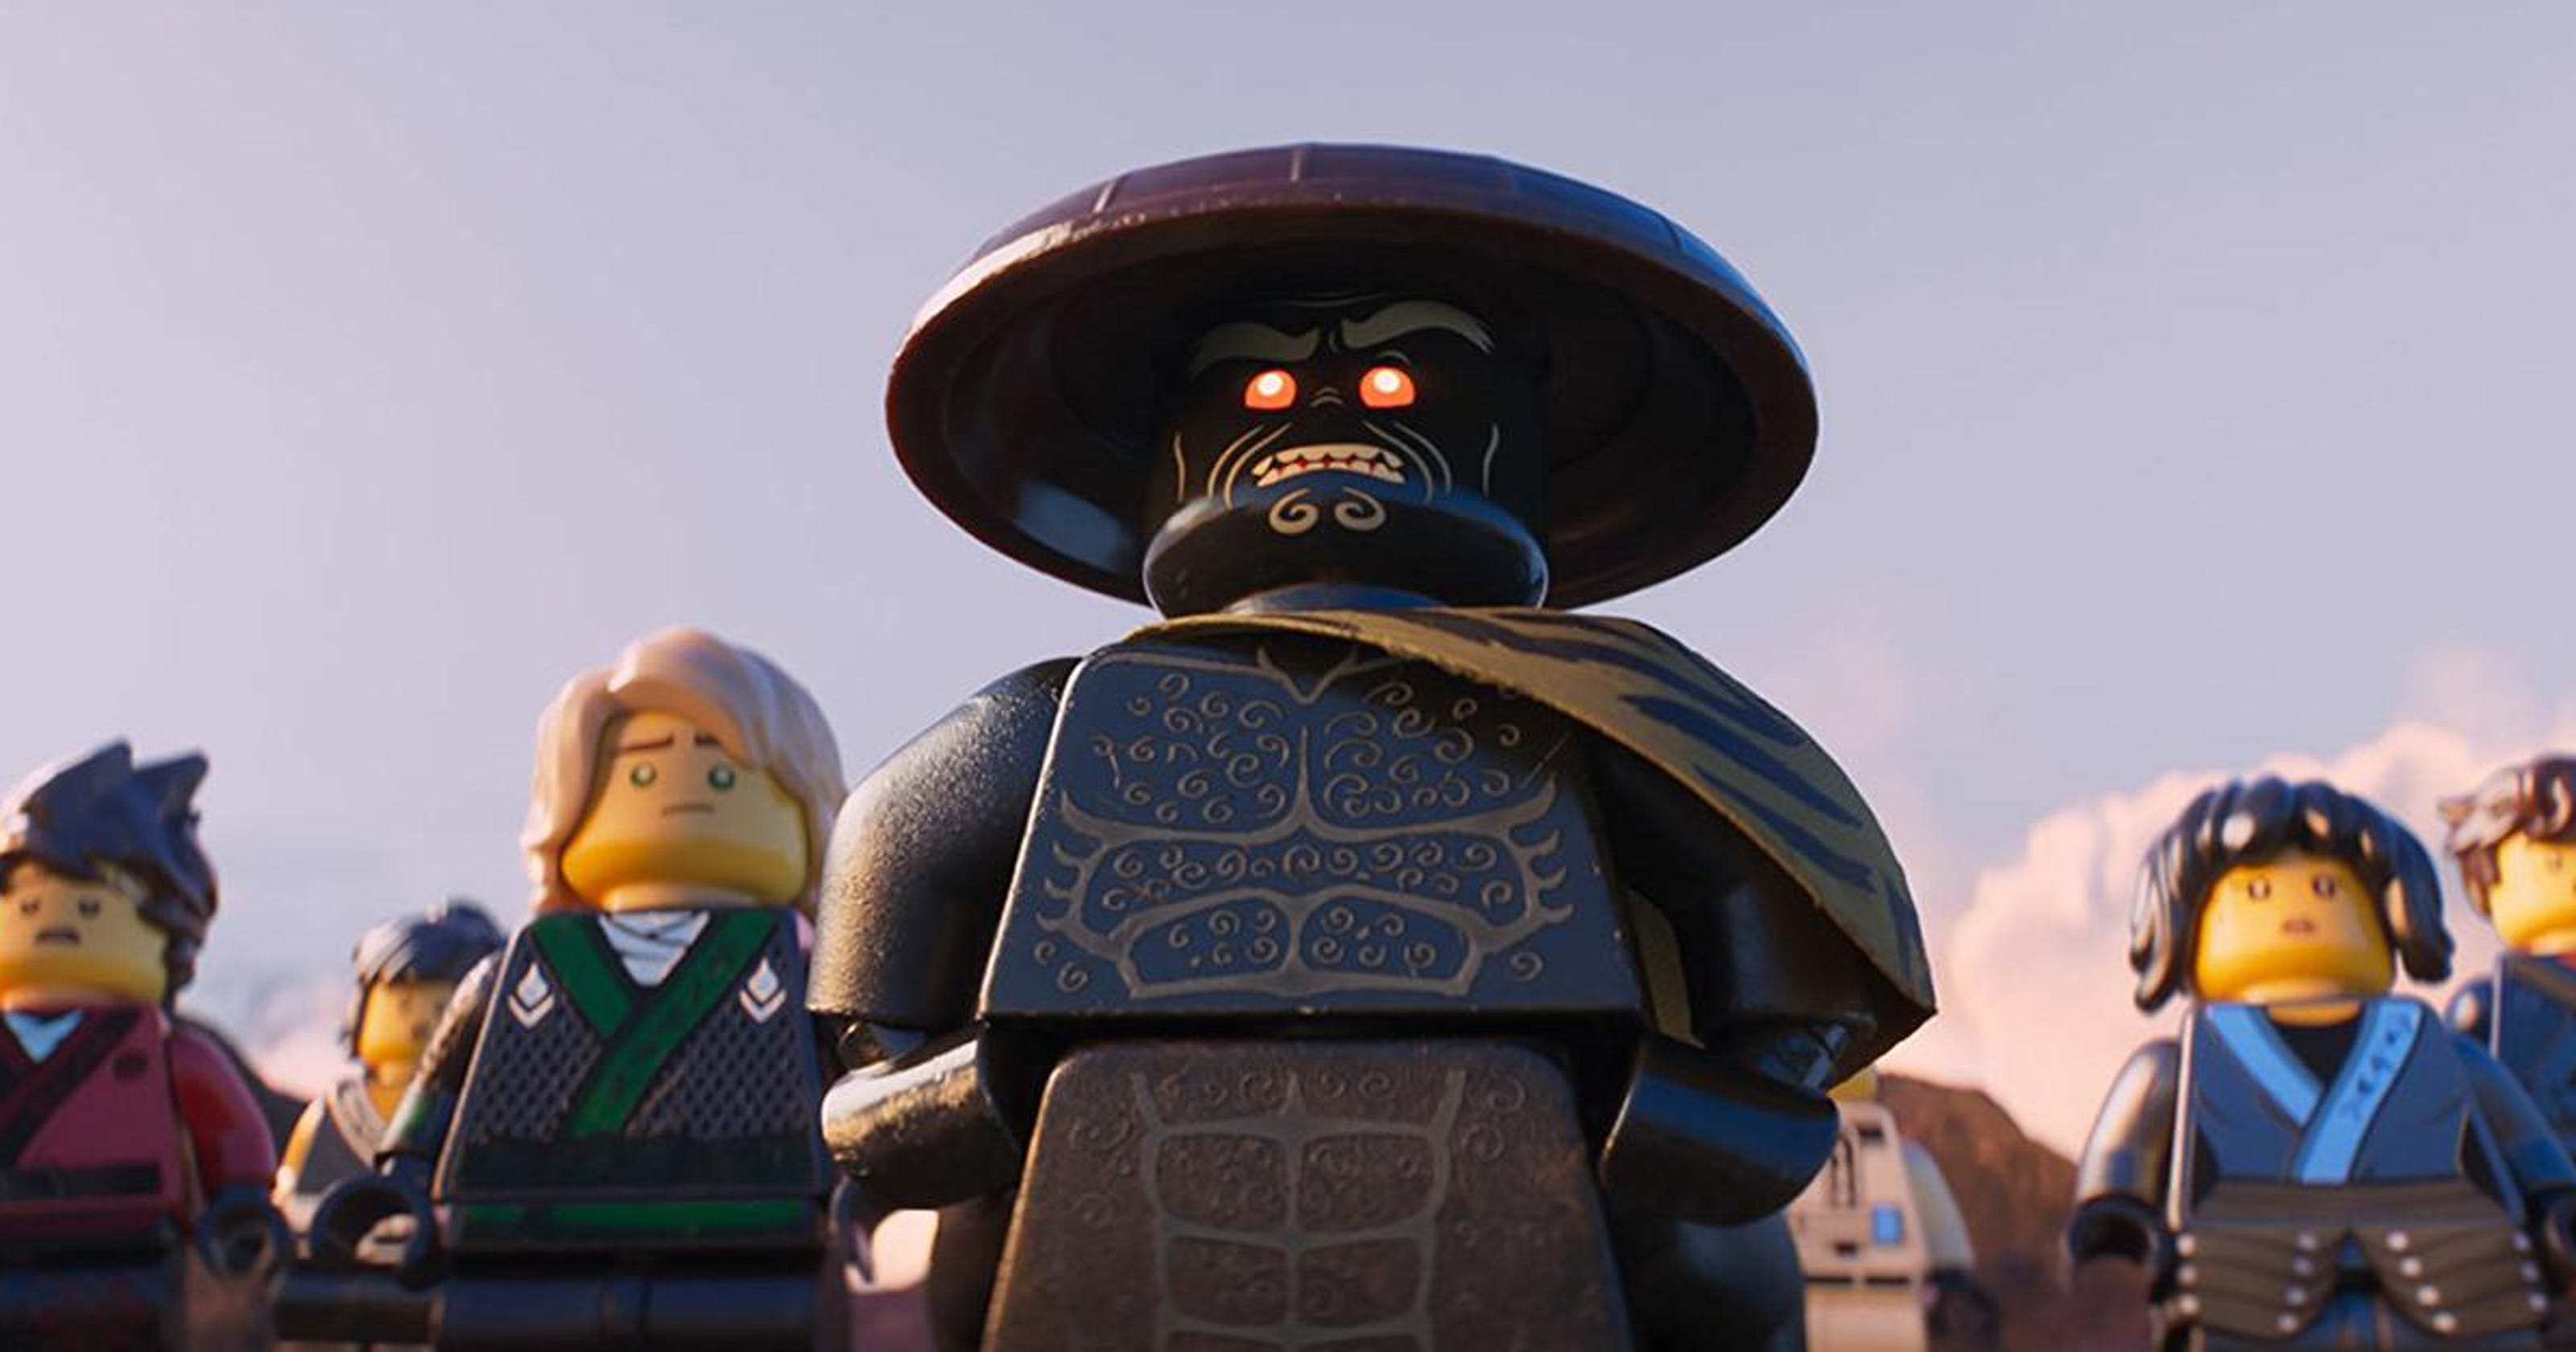 Movie review: 'Ninjago' doesn't click like other Lego movies